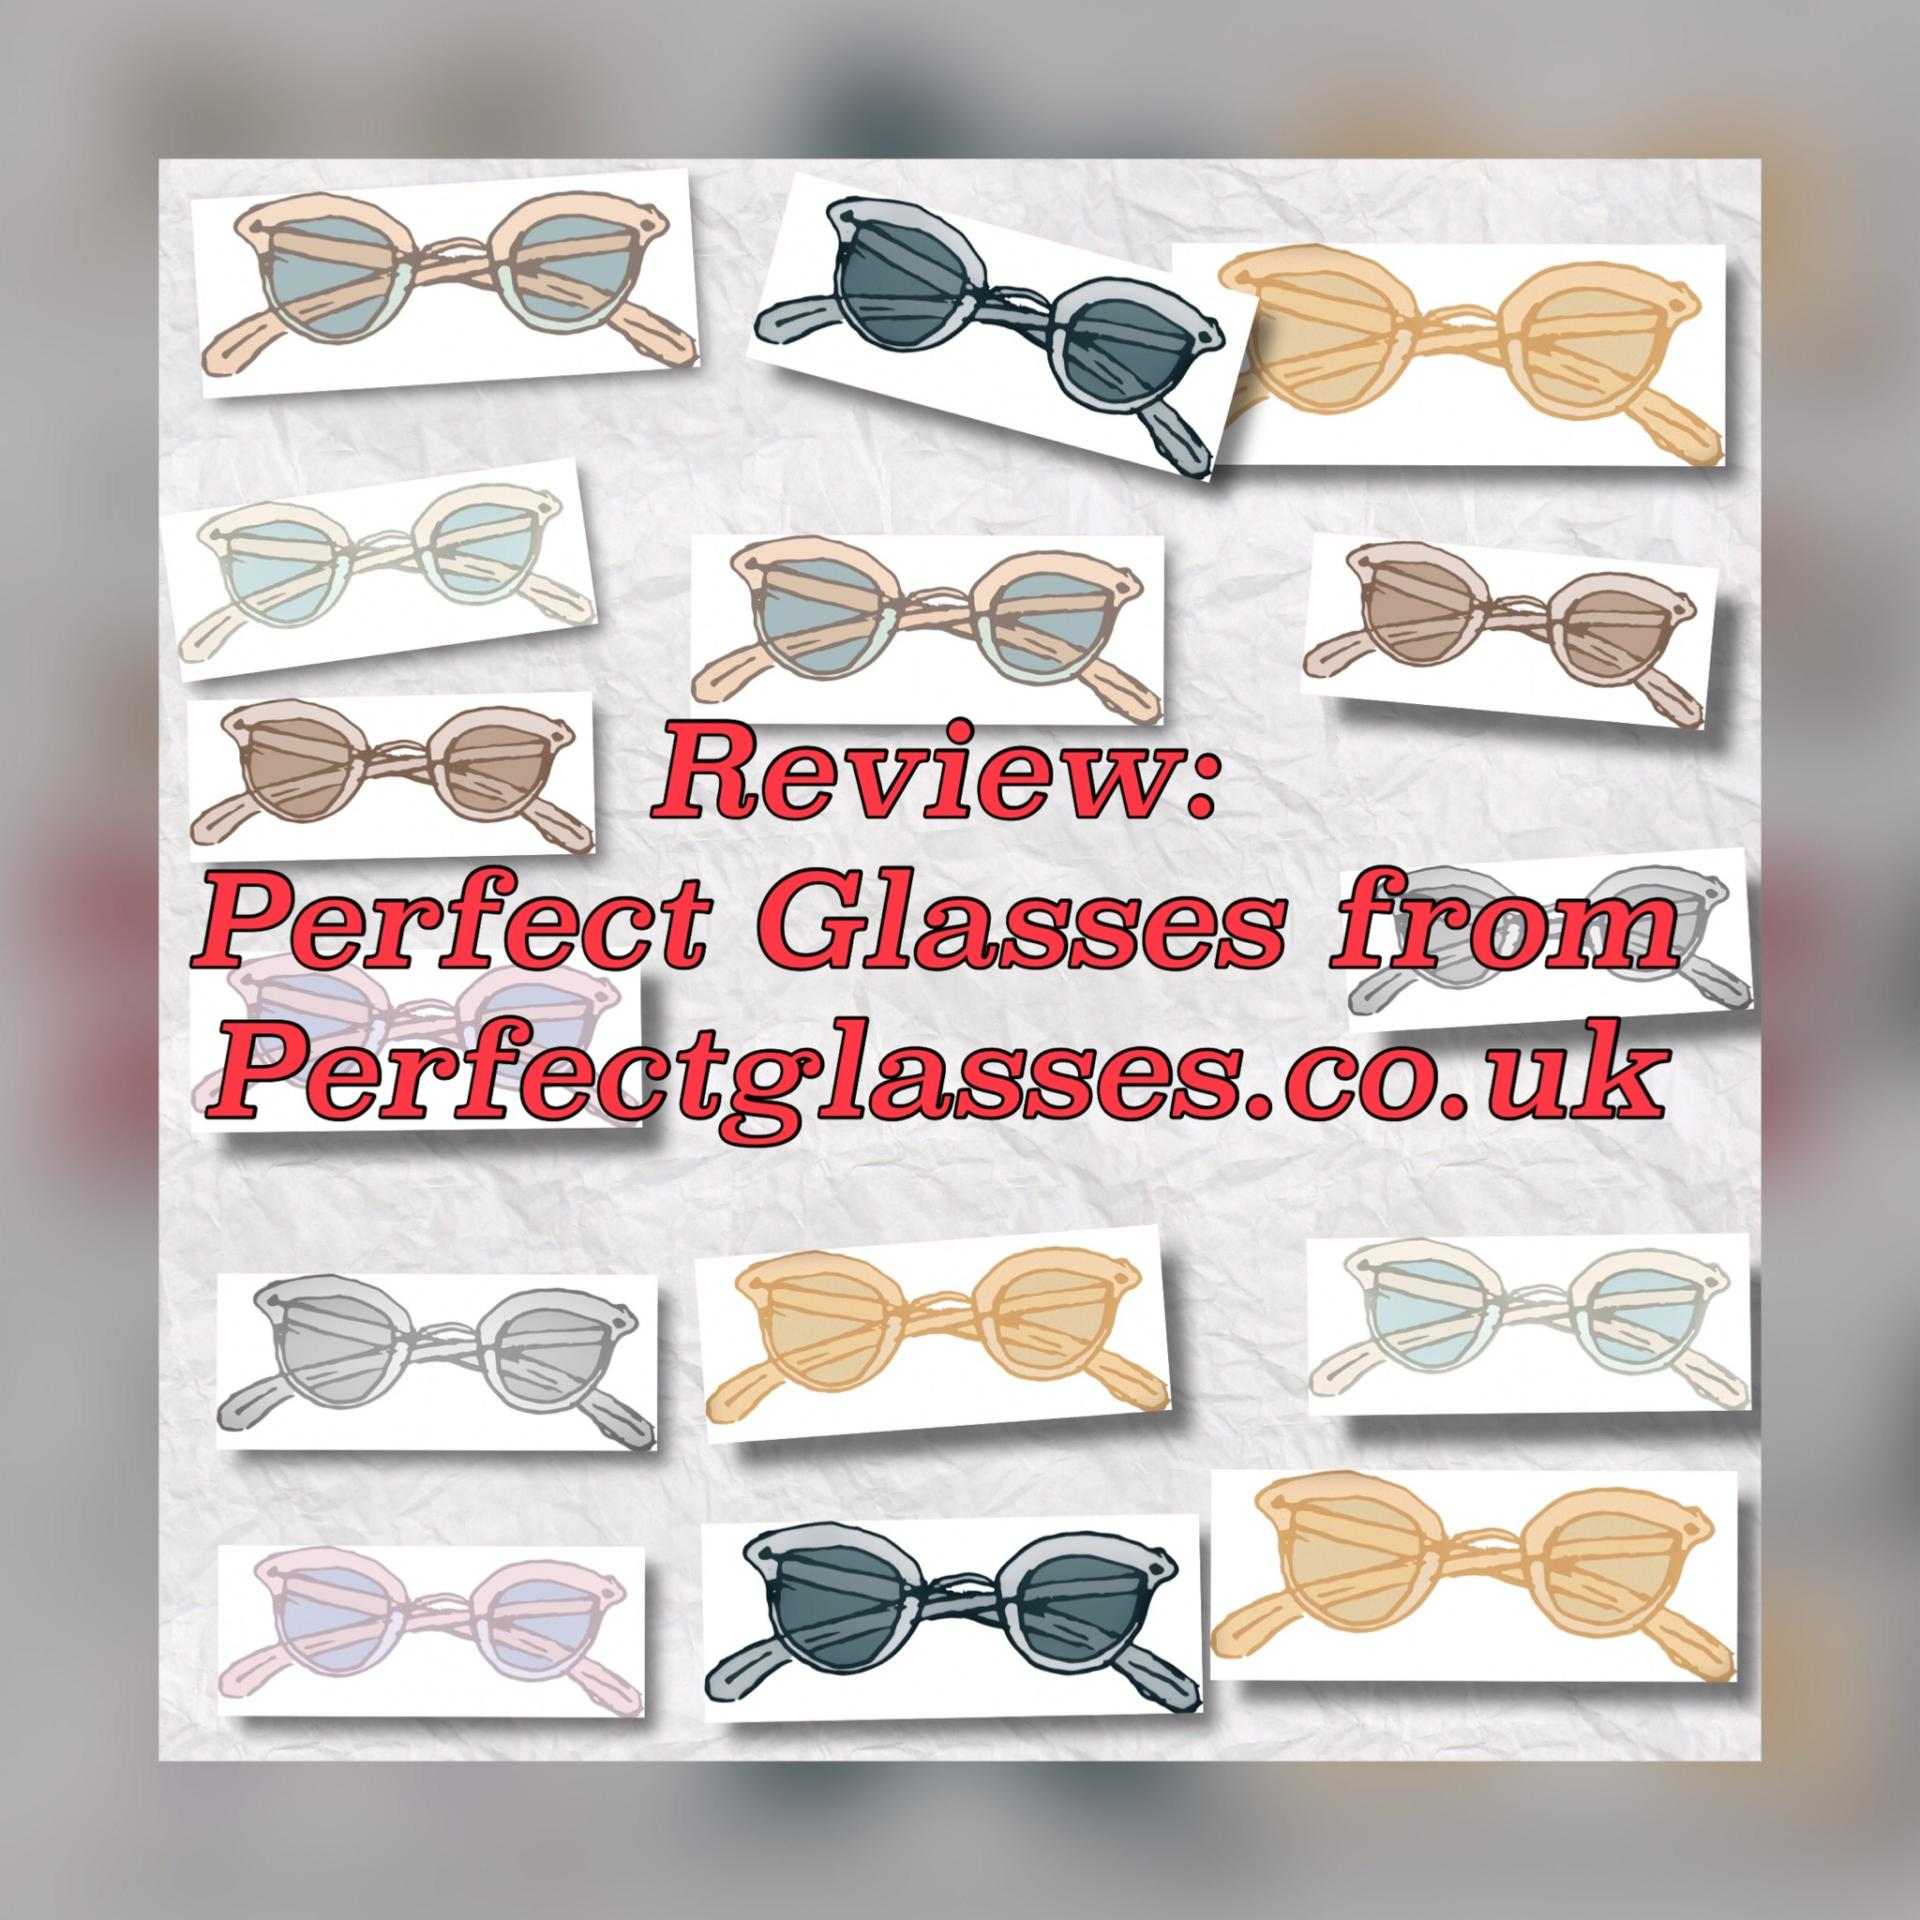 Review: Perfect Glasses from Perfectglasses.co.uk